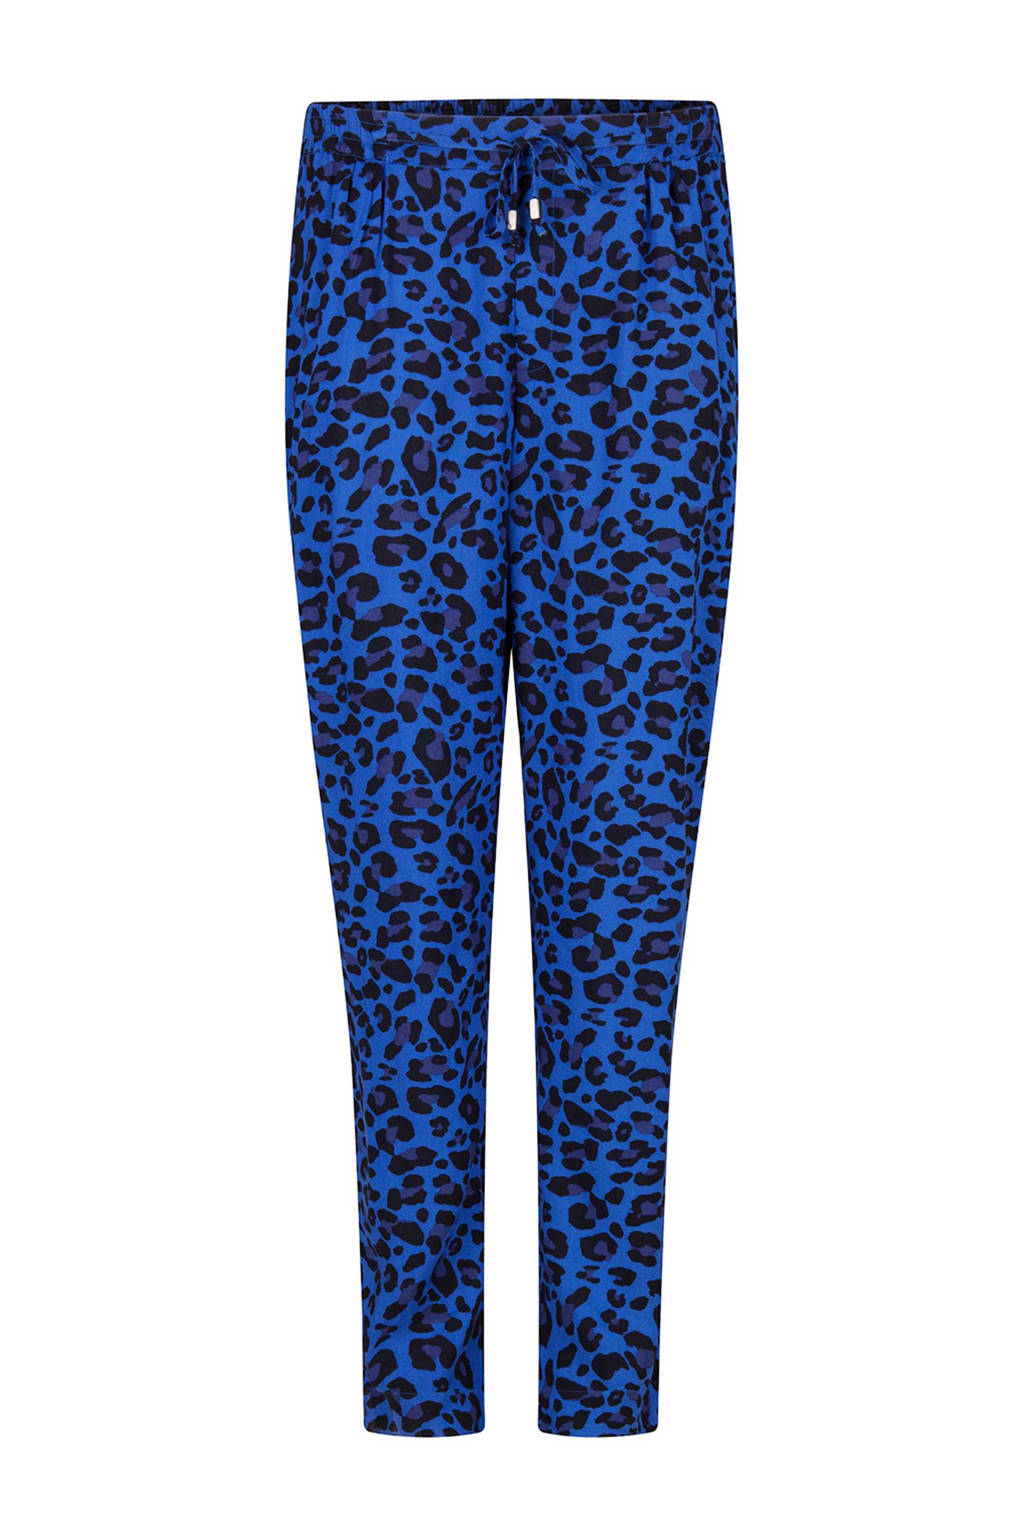 WE Fashion Aylin tapered fit broek met panterprint blauw, Blauw